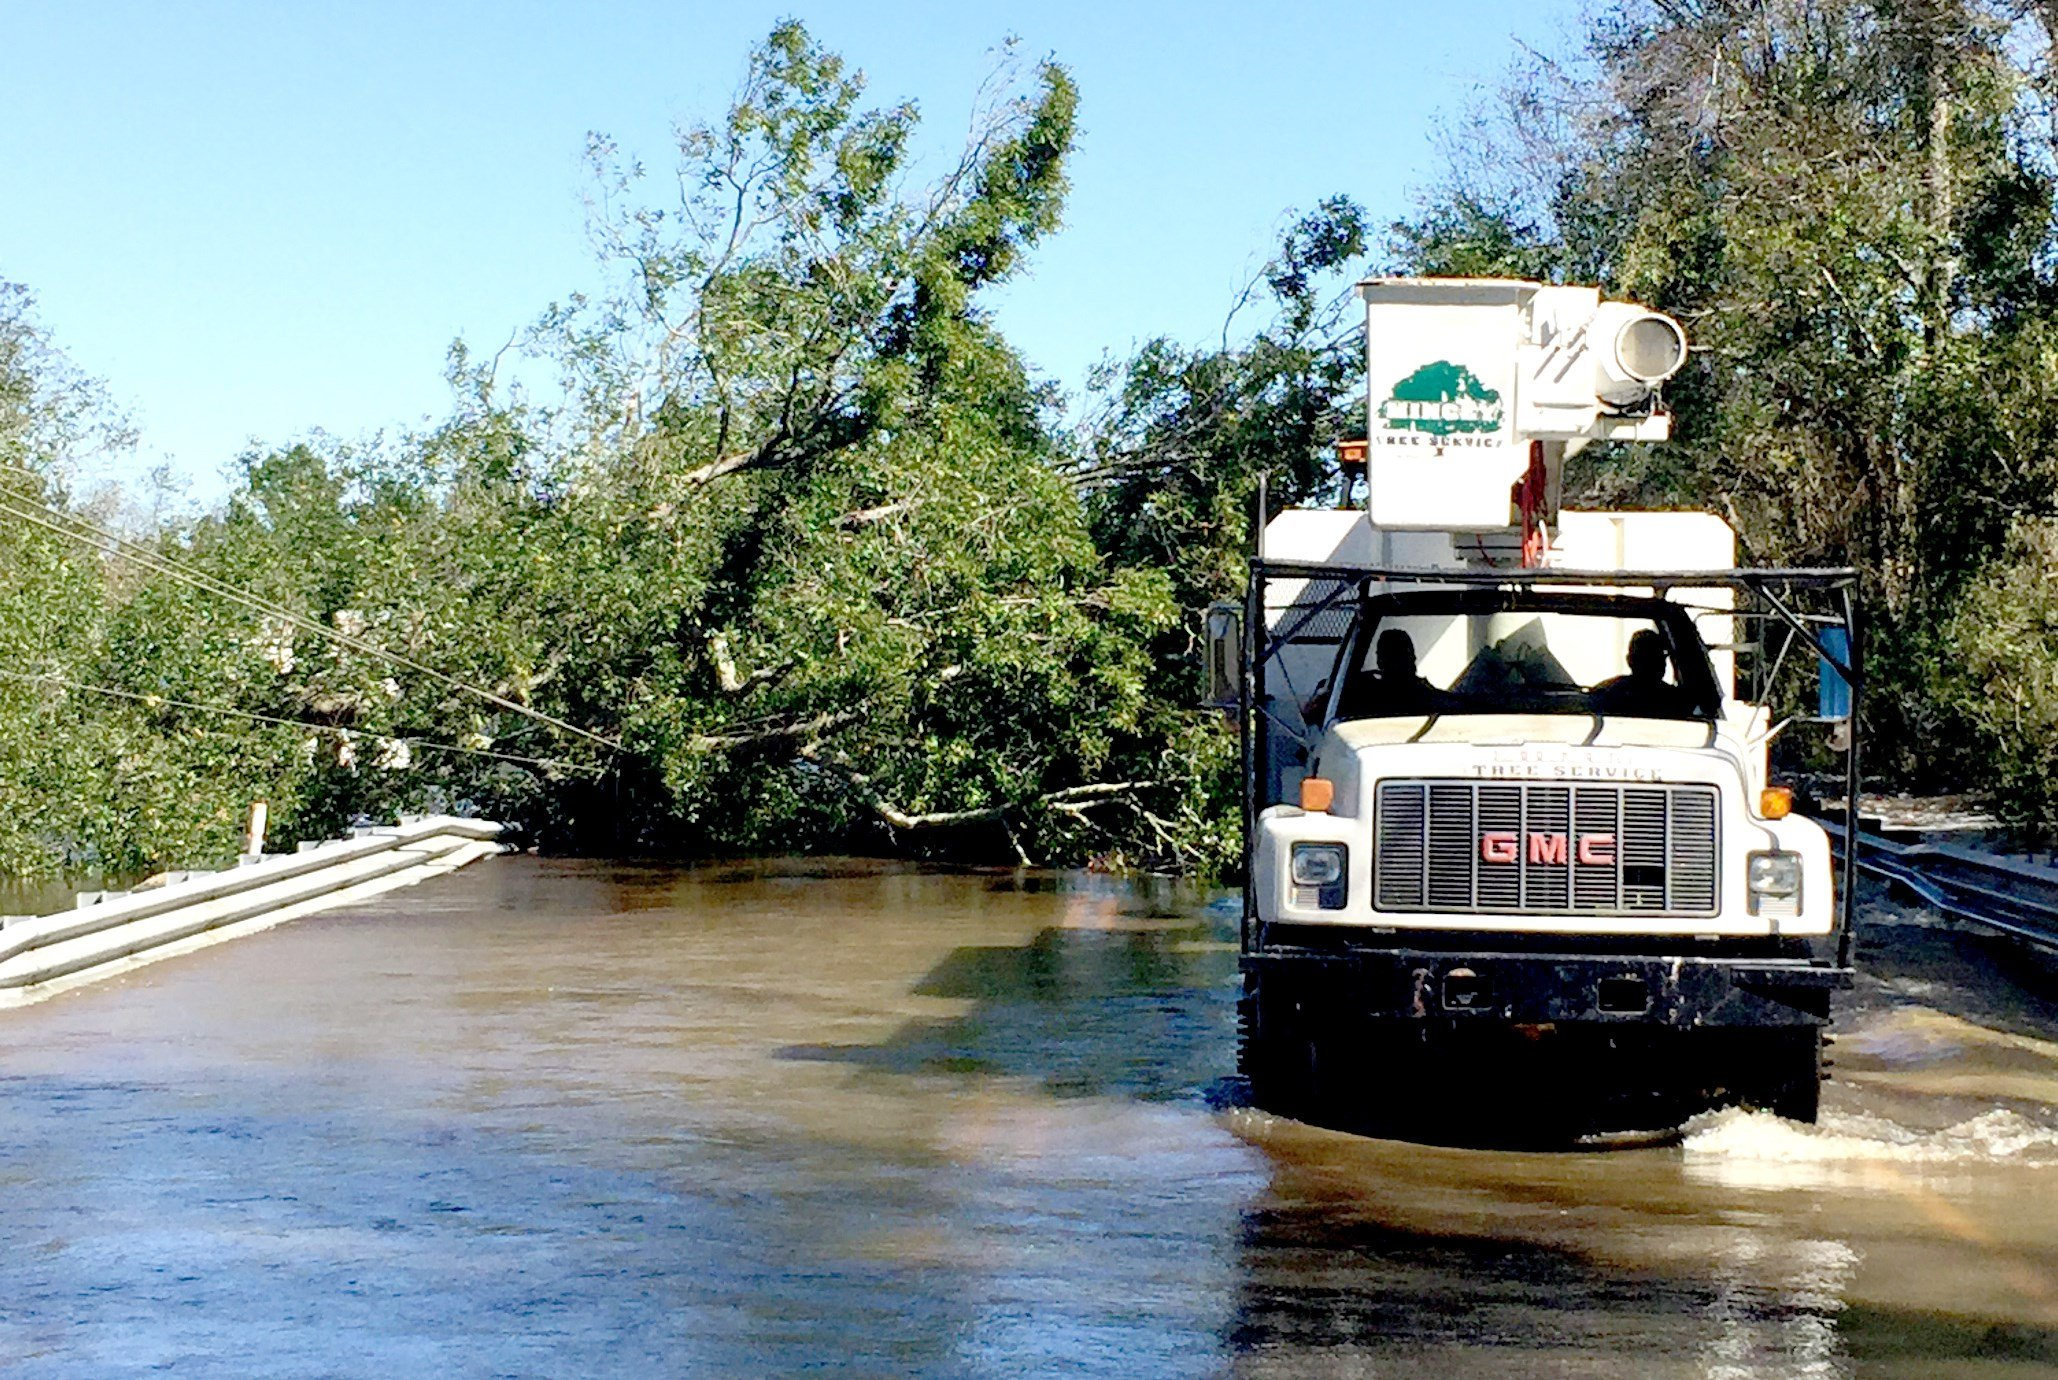 Joey Mincey's business, Mincey Tree Service, worked around the clock following Hurricane Matthew. Mincey is still working to complete insurance claims caused by the flooding.